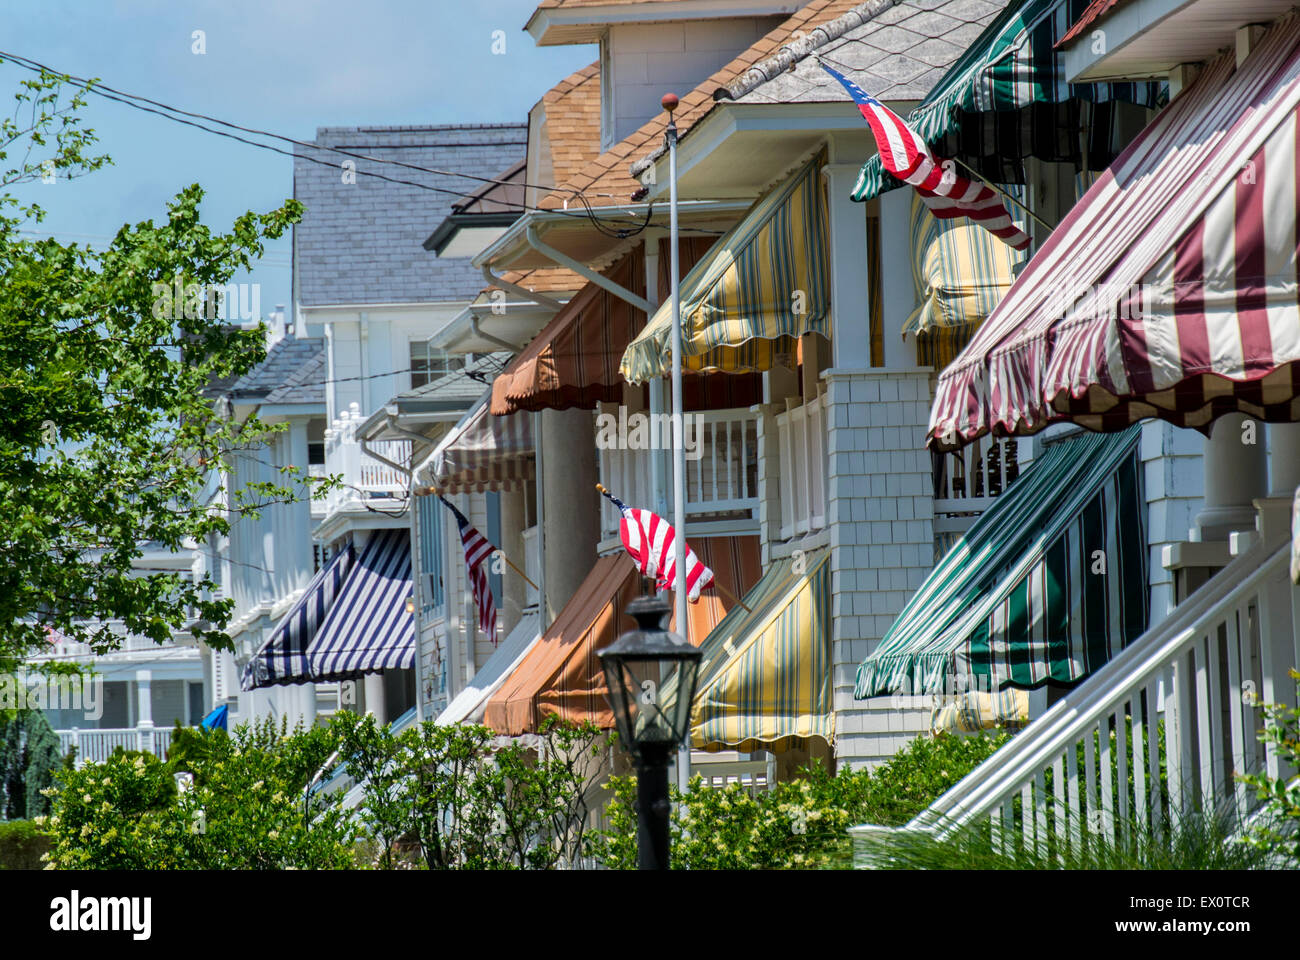 Ocean City New Jersey Usa Detail Wooden Houses With Awnings In